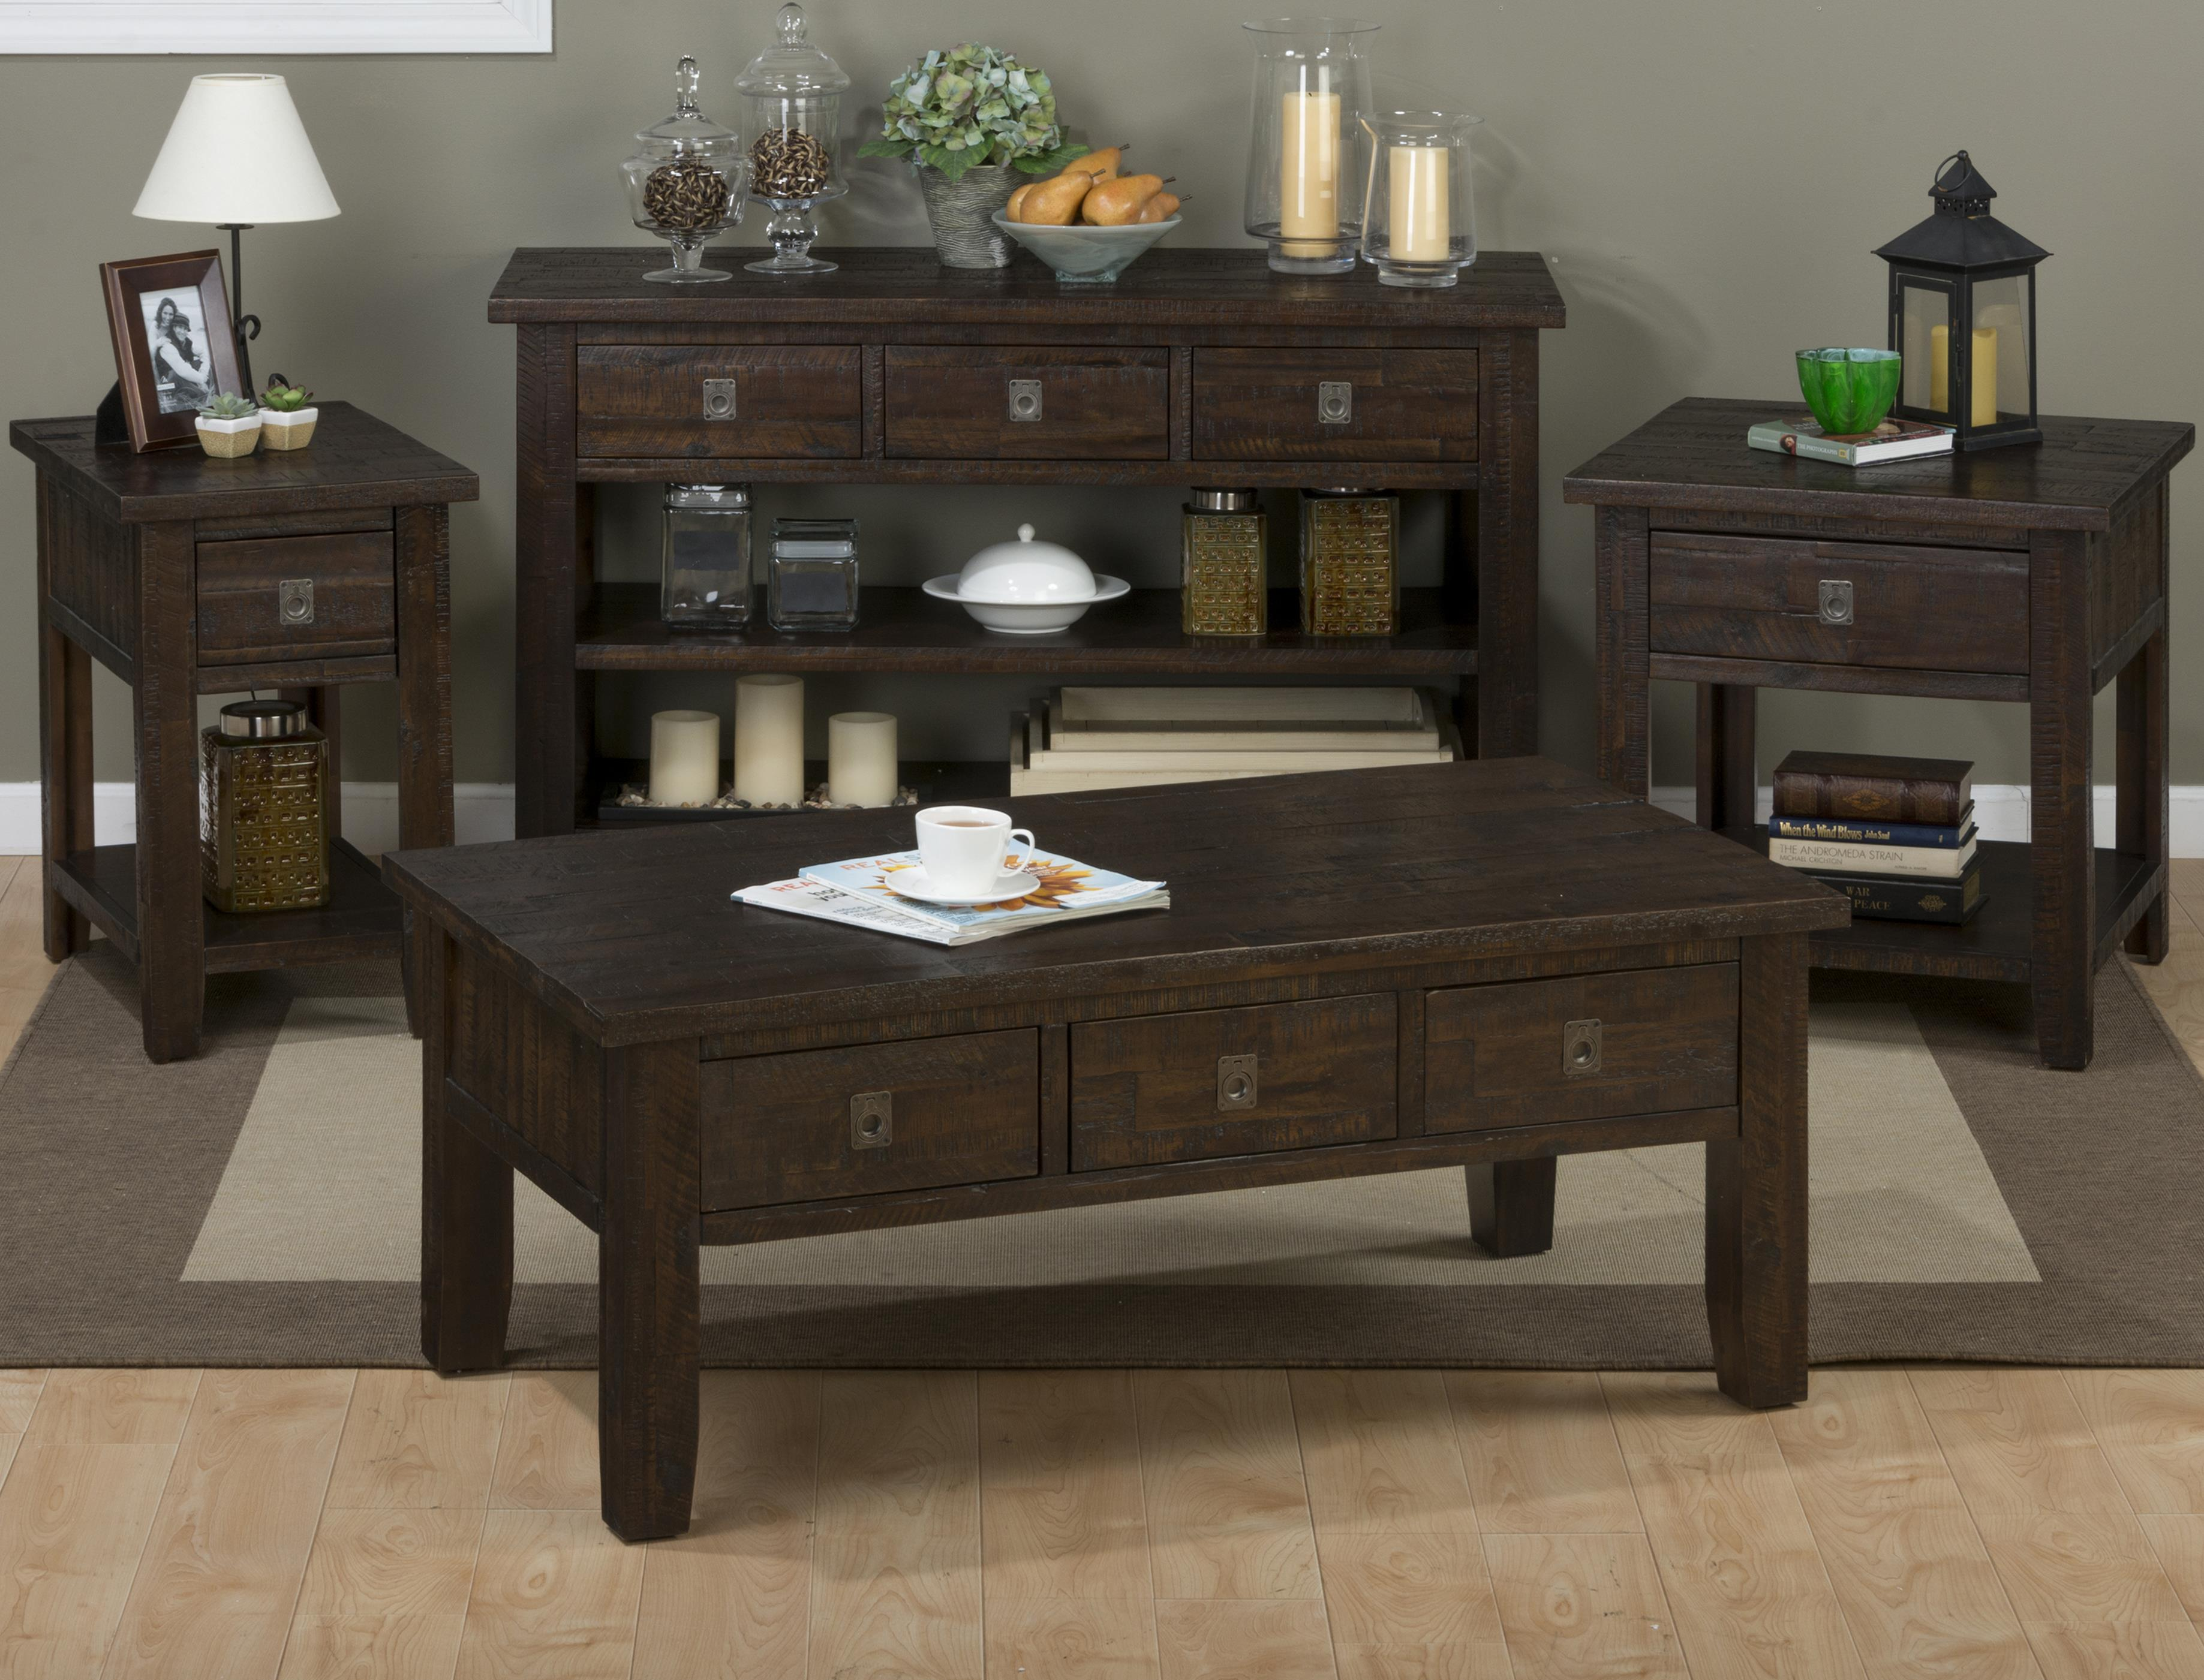 Kona Grove Occasional Table Group by Jofran at Johnny Janosik